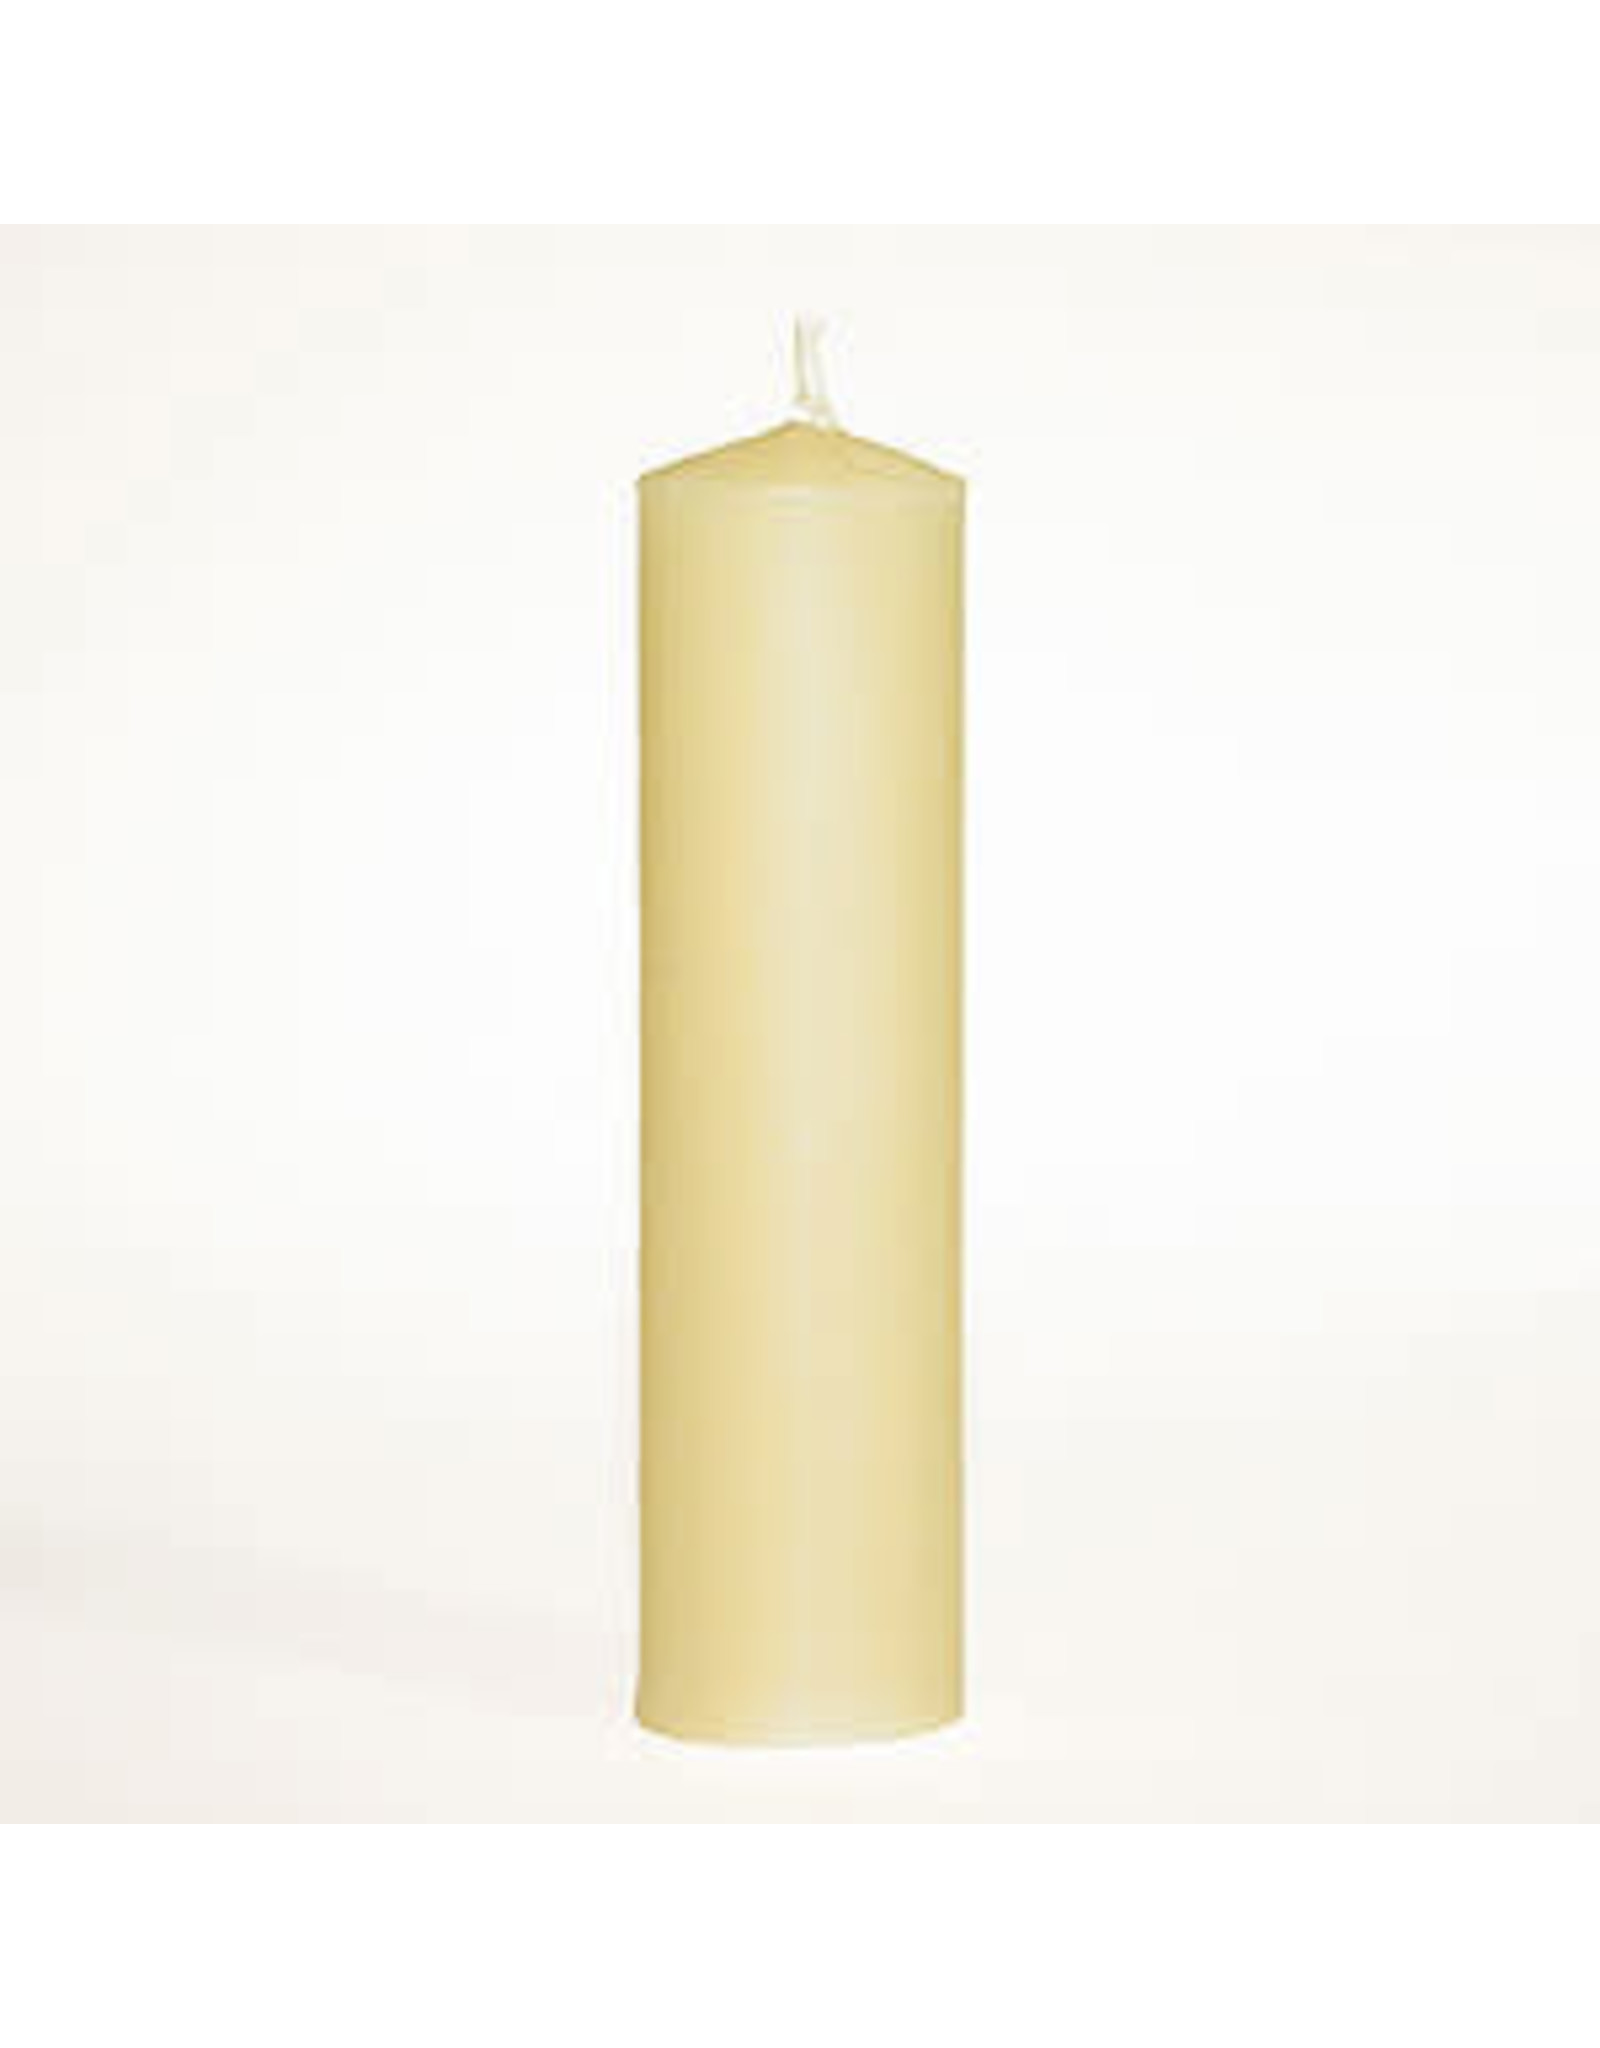 "100% Beeswax 1-1/2"" x 5-5/8"" Plain End Candle Stick"